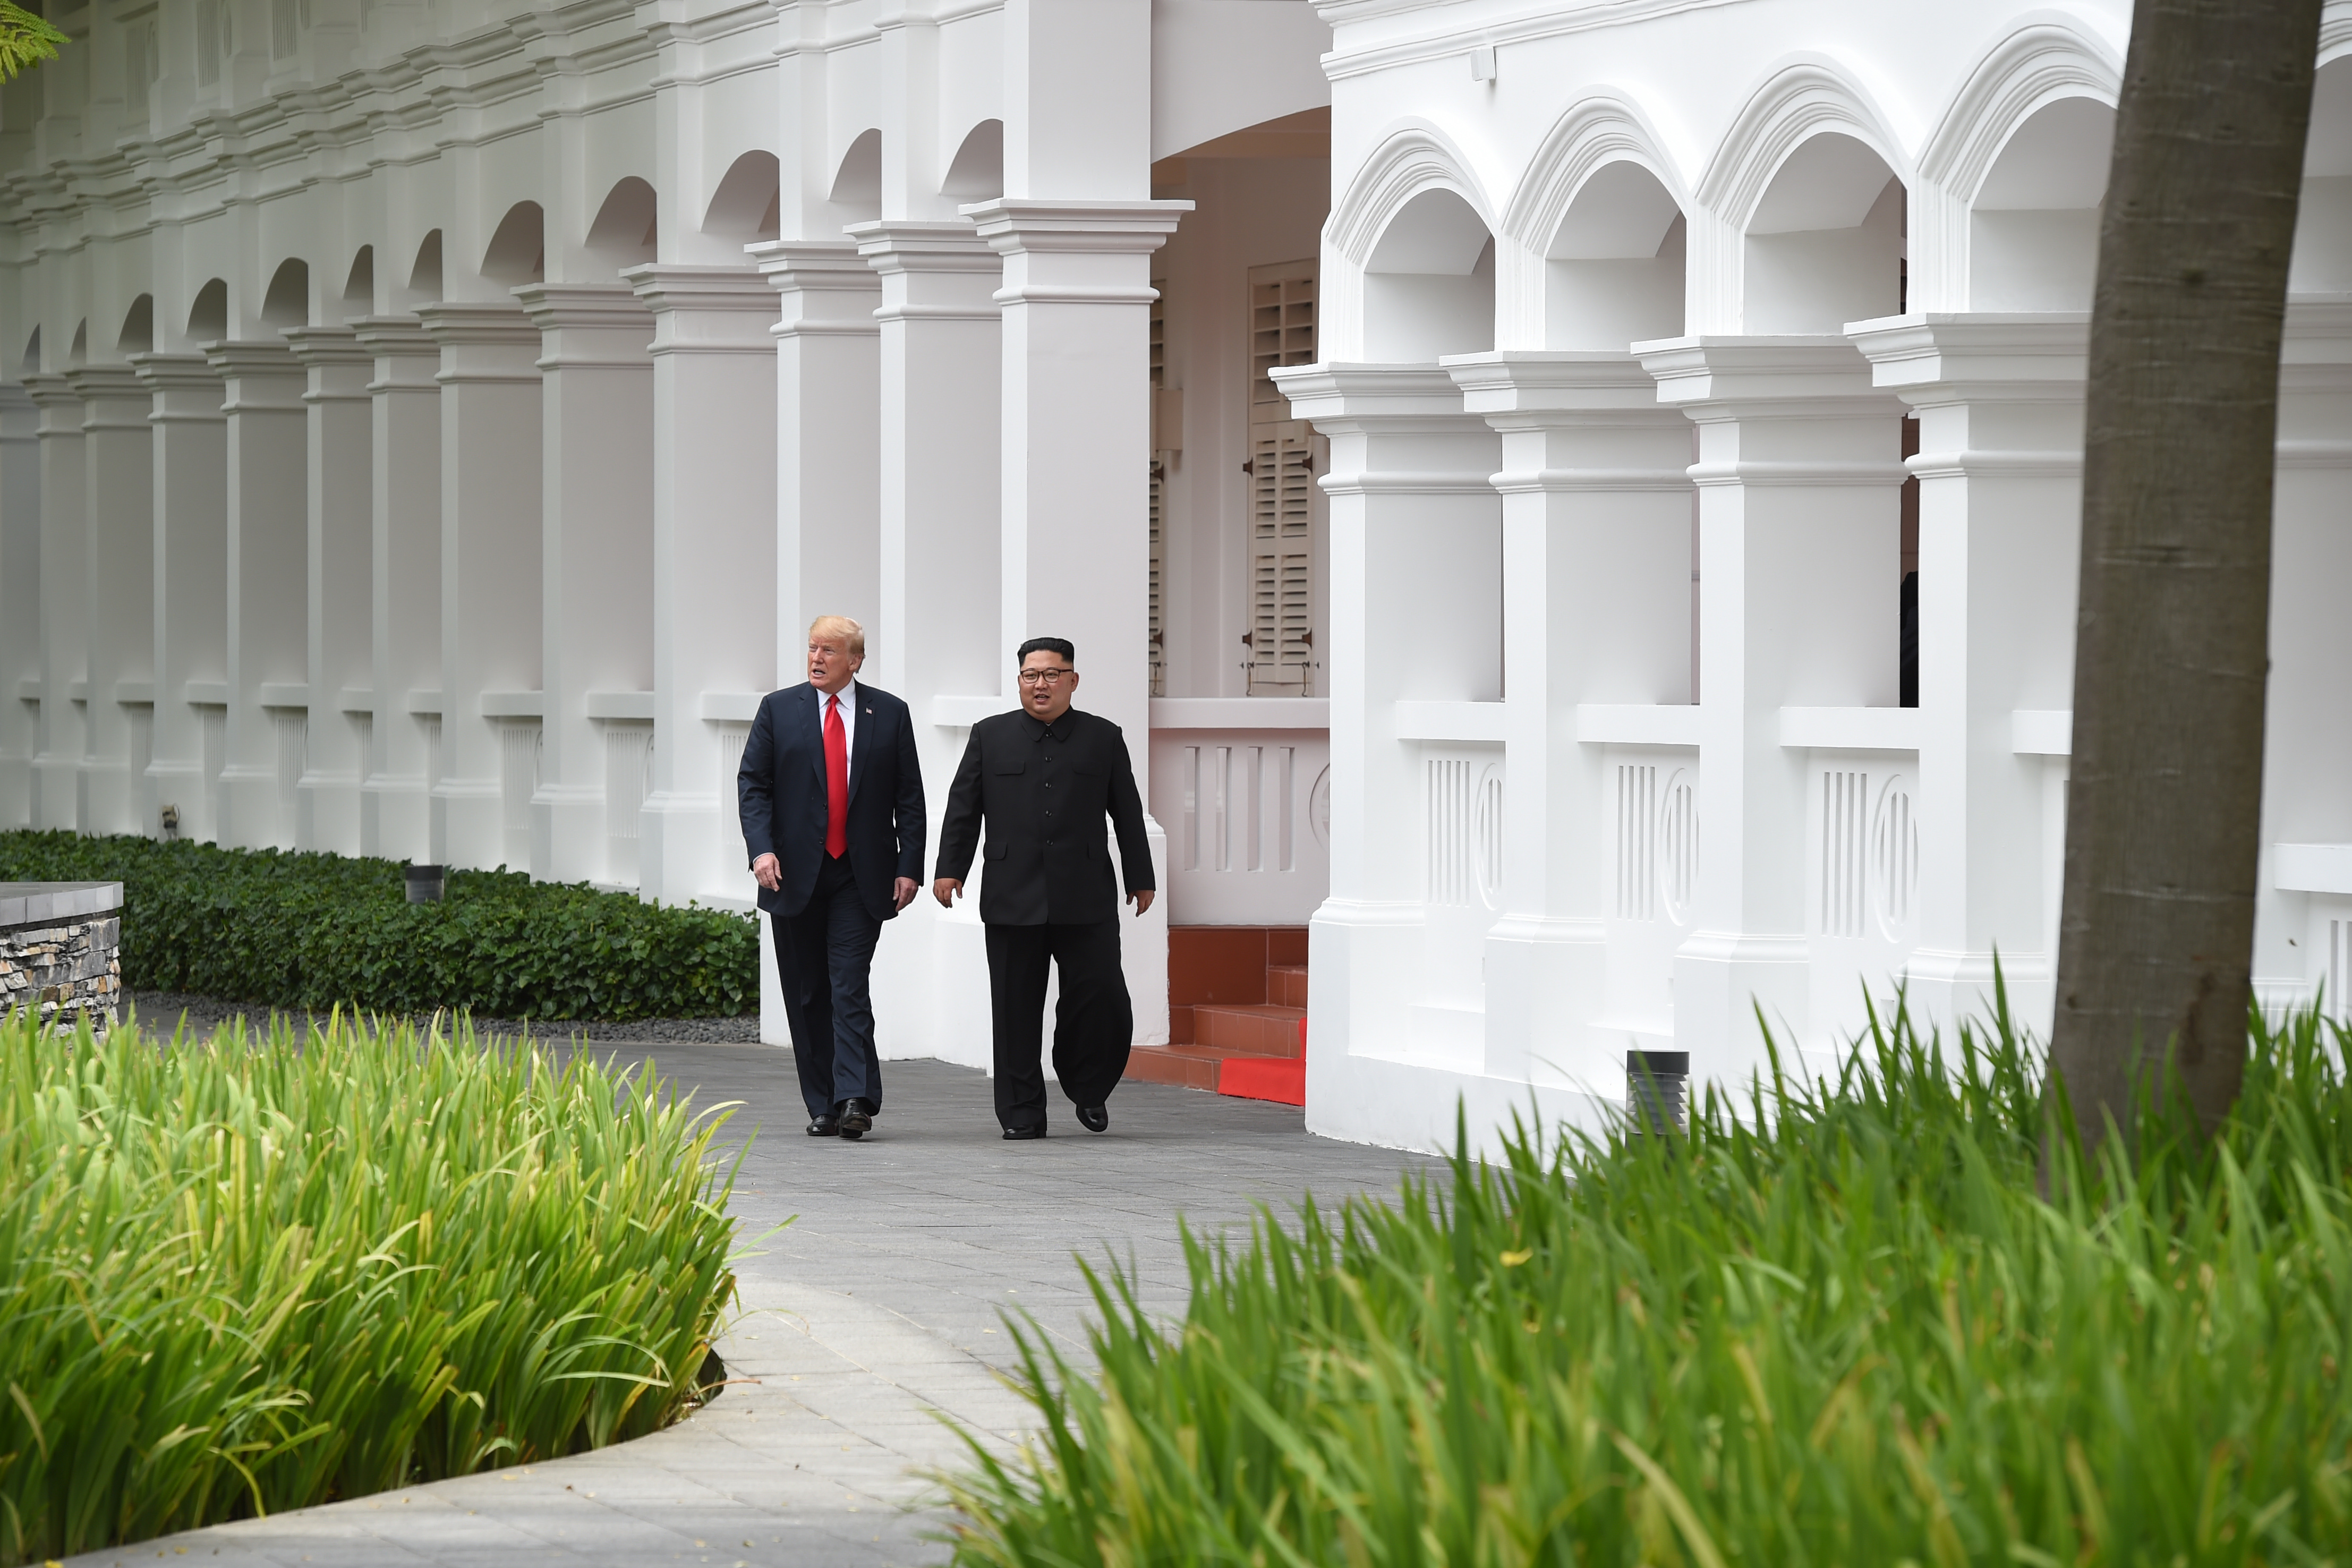 North Korea's leader Kim Jong Un (R) walks with US President Donald Trump (L) during a break in talks on June 12.